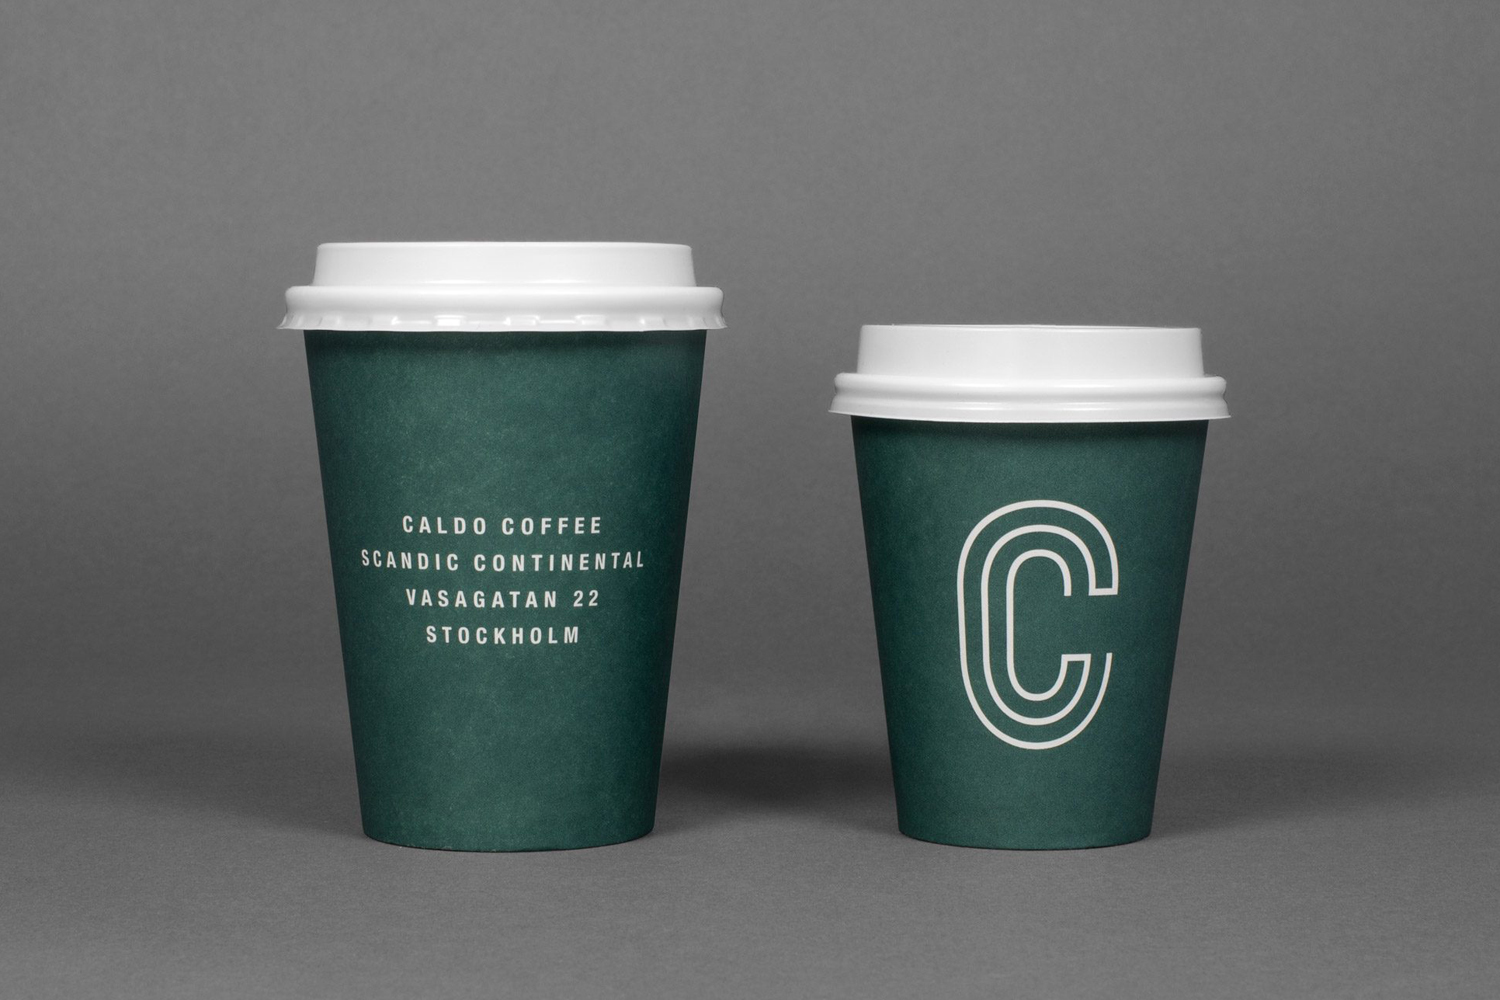 Brand identity, logo and coffee cups designed by 25ah for Stockholm cafe Caldo Coffee at the Scandic Continental